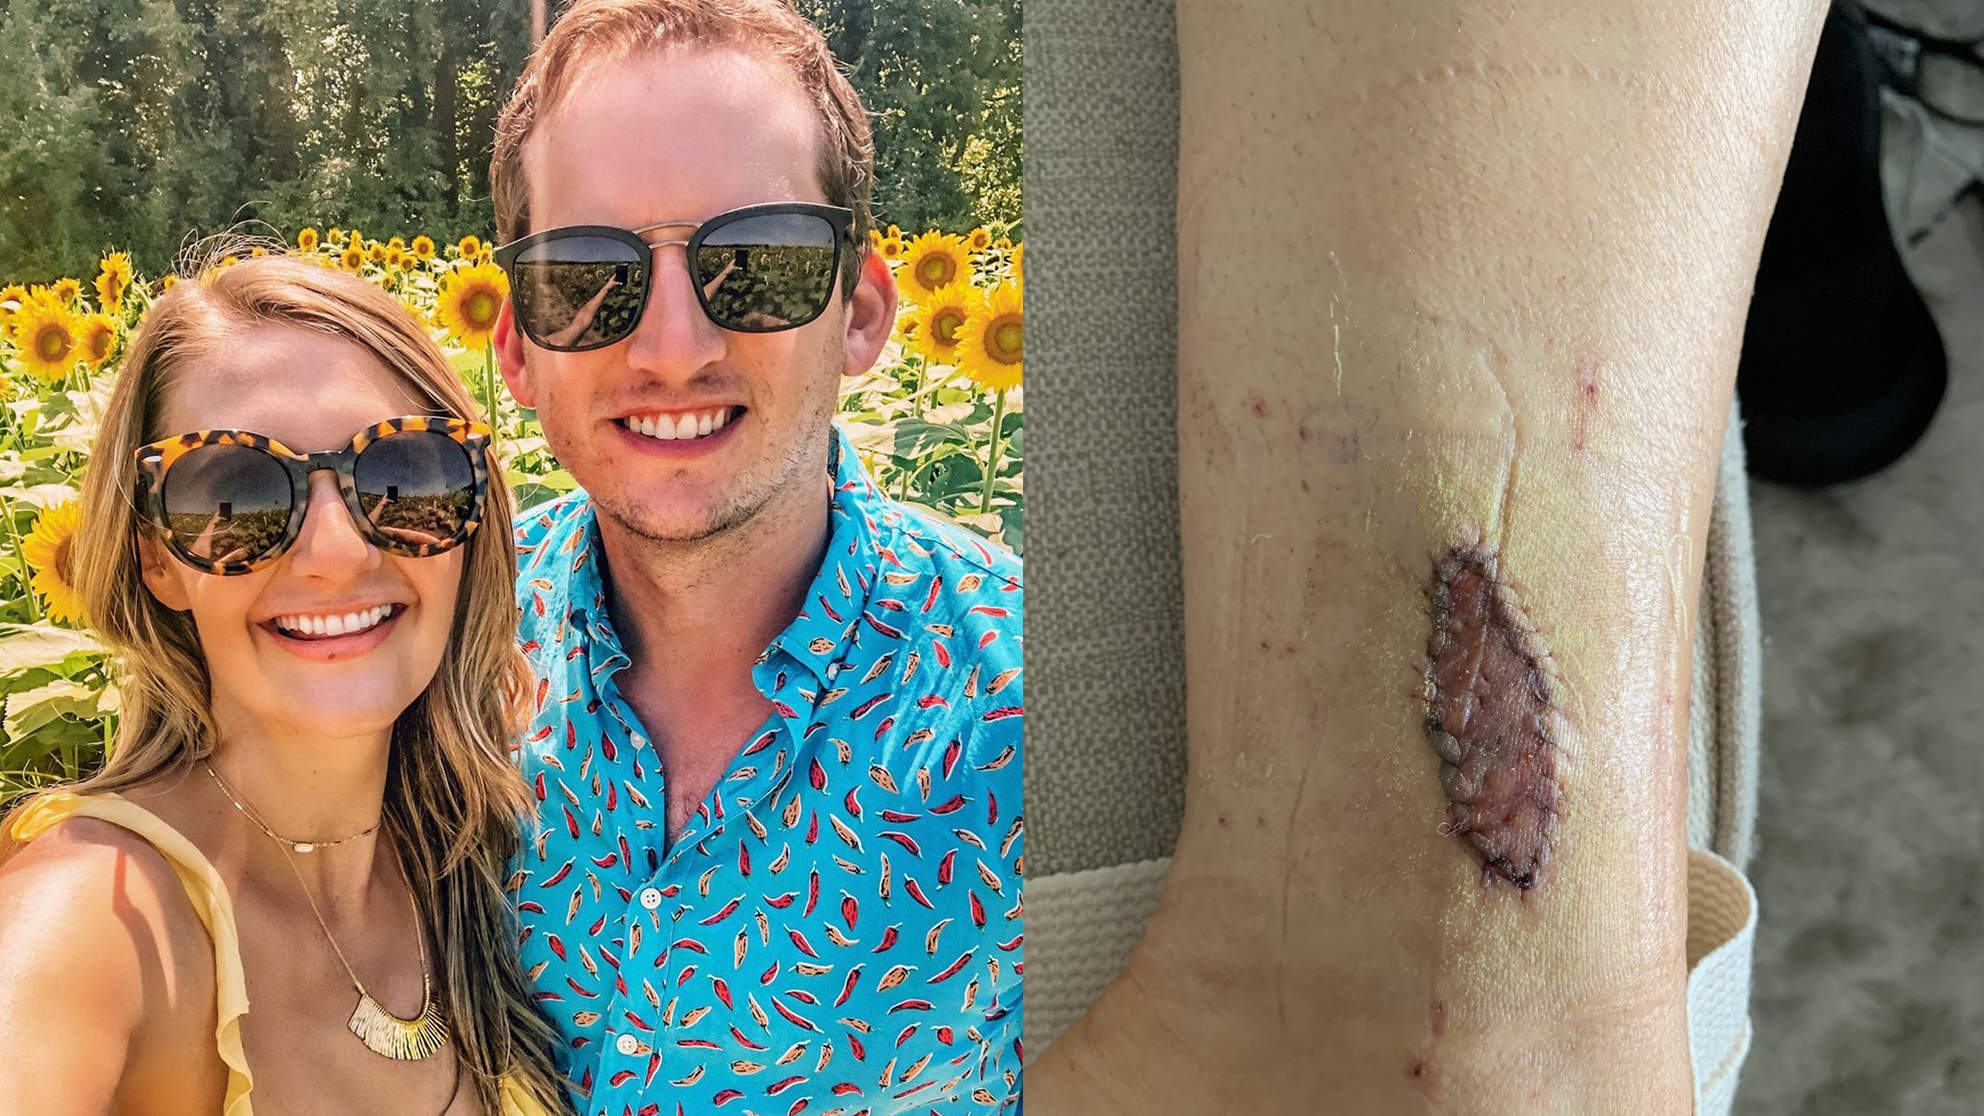 This Influencer's BirthmarkTurned Out to Be Melanoma: 'I Could Feel It Growing'